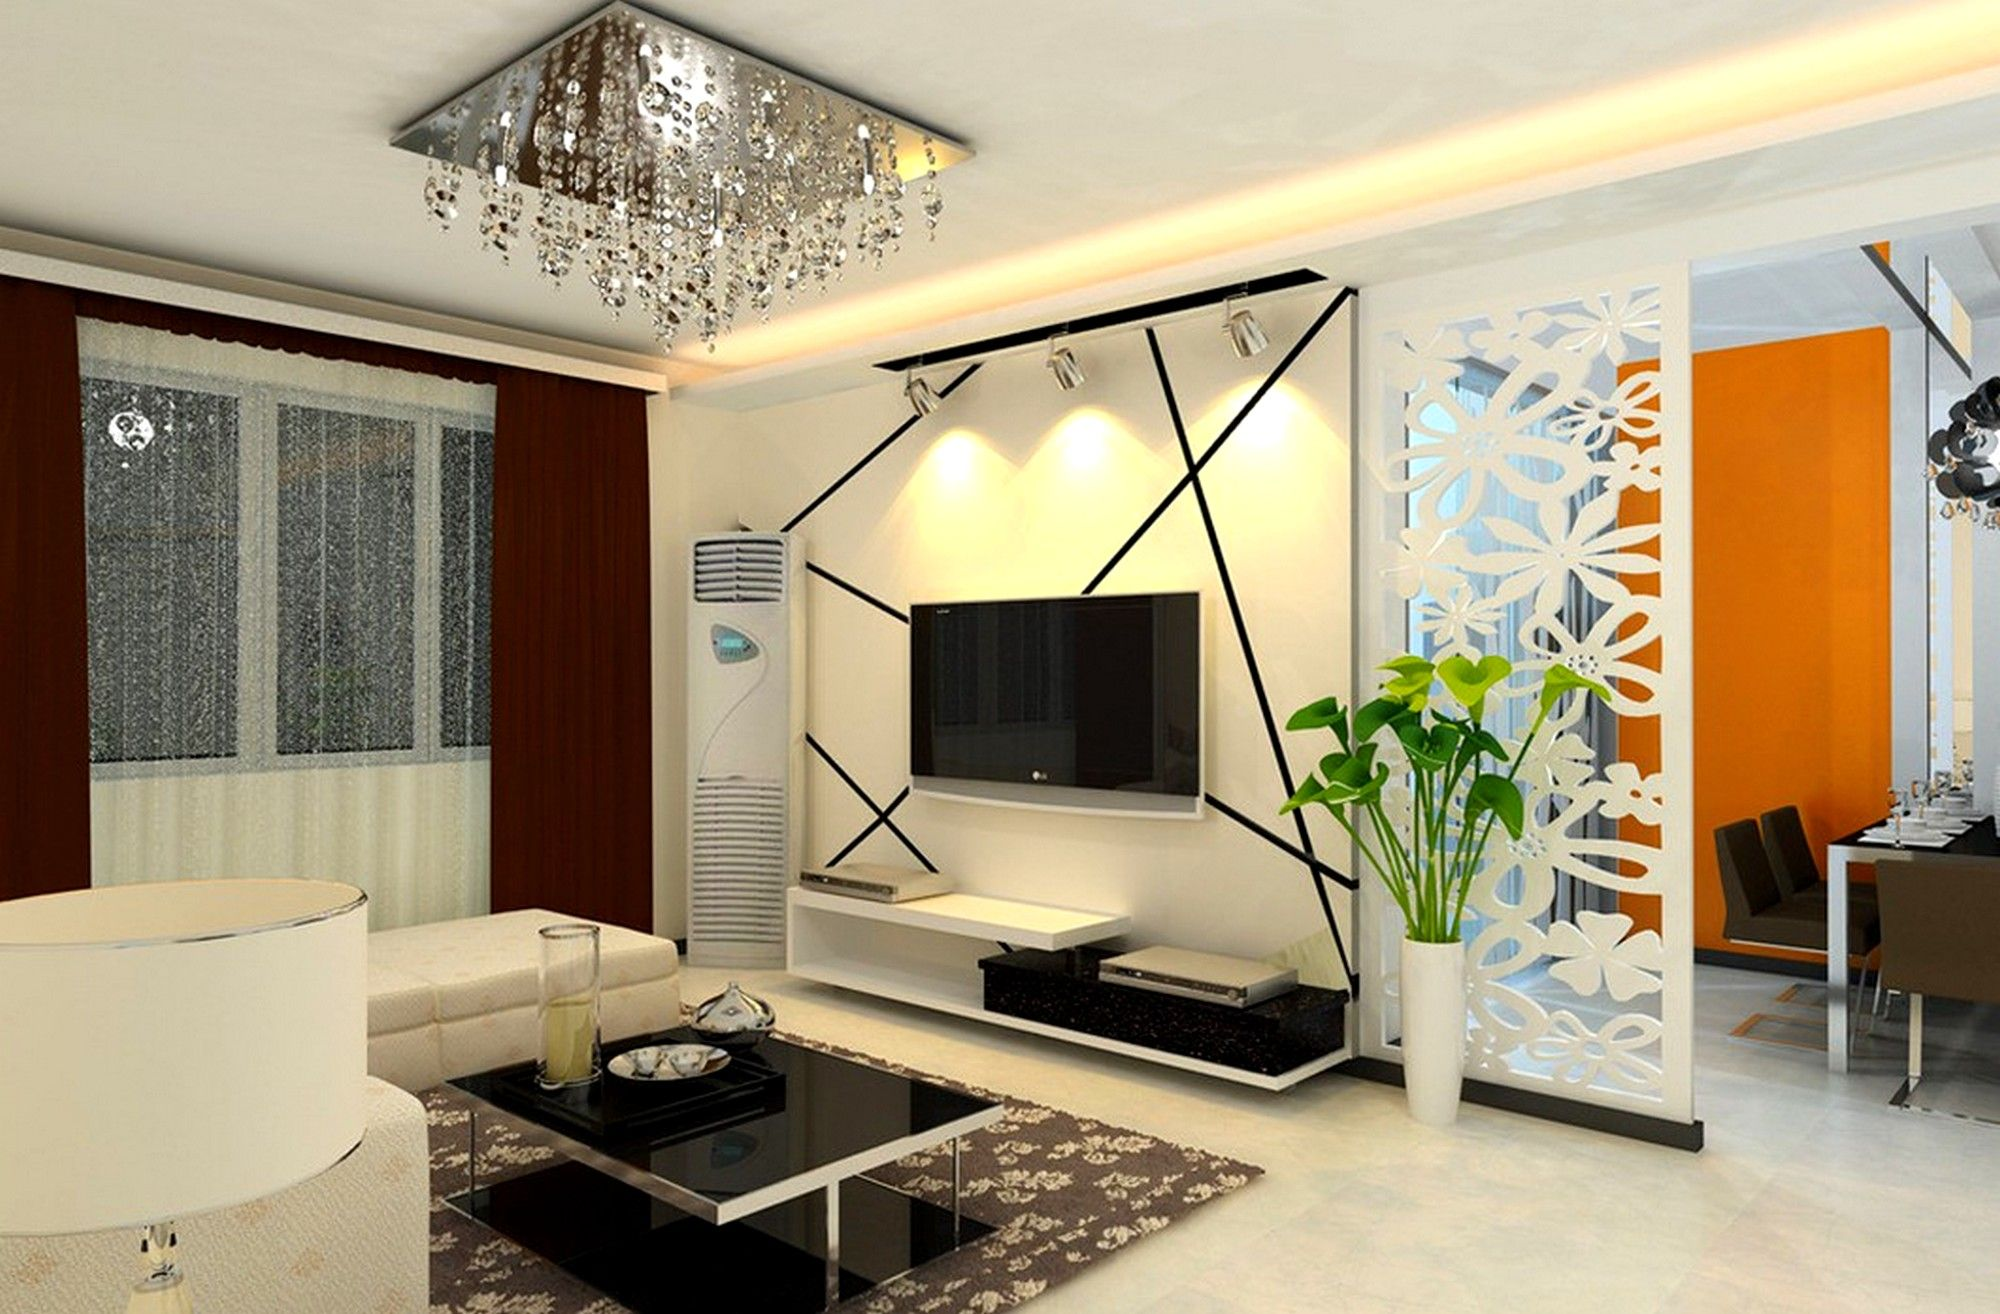 Interior Design Ideas For Living Room And Kitchen Latest Colour Combination For Living Room  Google Search  Decor